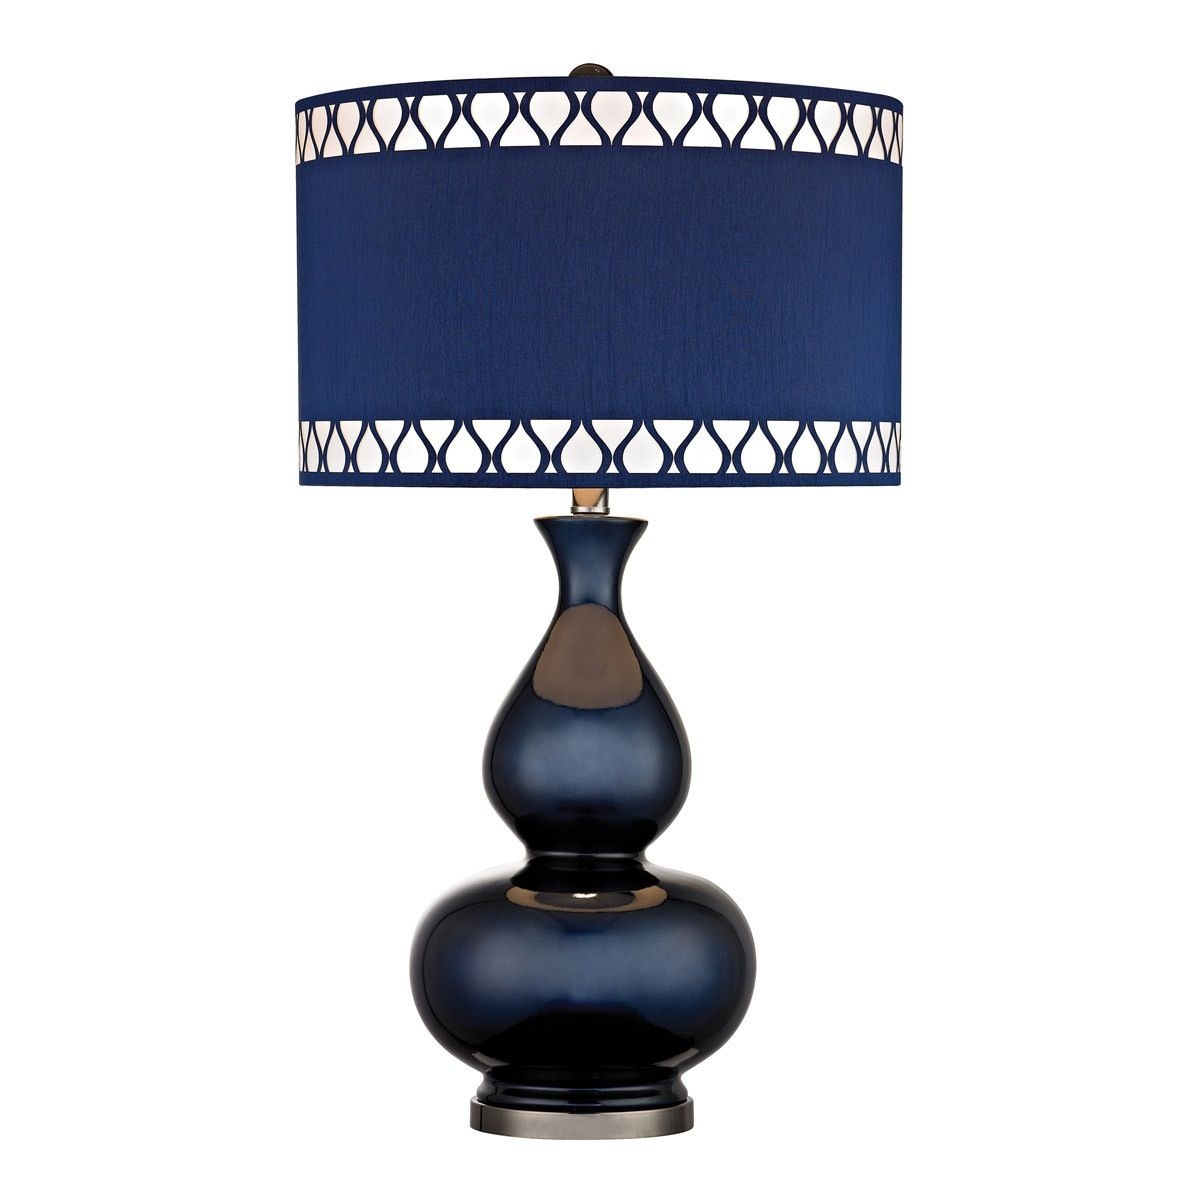 Off Heathfield Navy Blue And Black Nickel One Light Table Lamp By Dimond. @  Navy Blue Gourd Lamp With Laser Cut Trim Shade @ Bulbs Not Included @  Switch ...